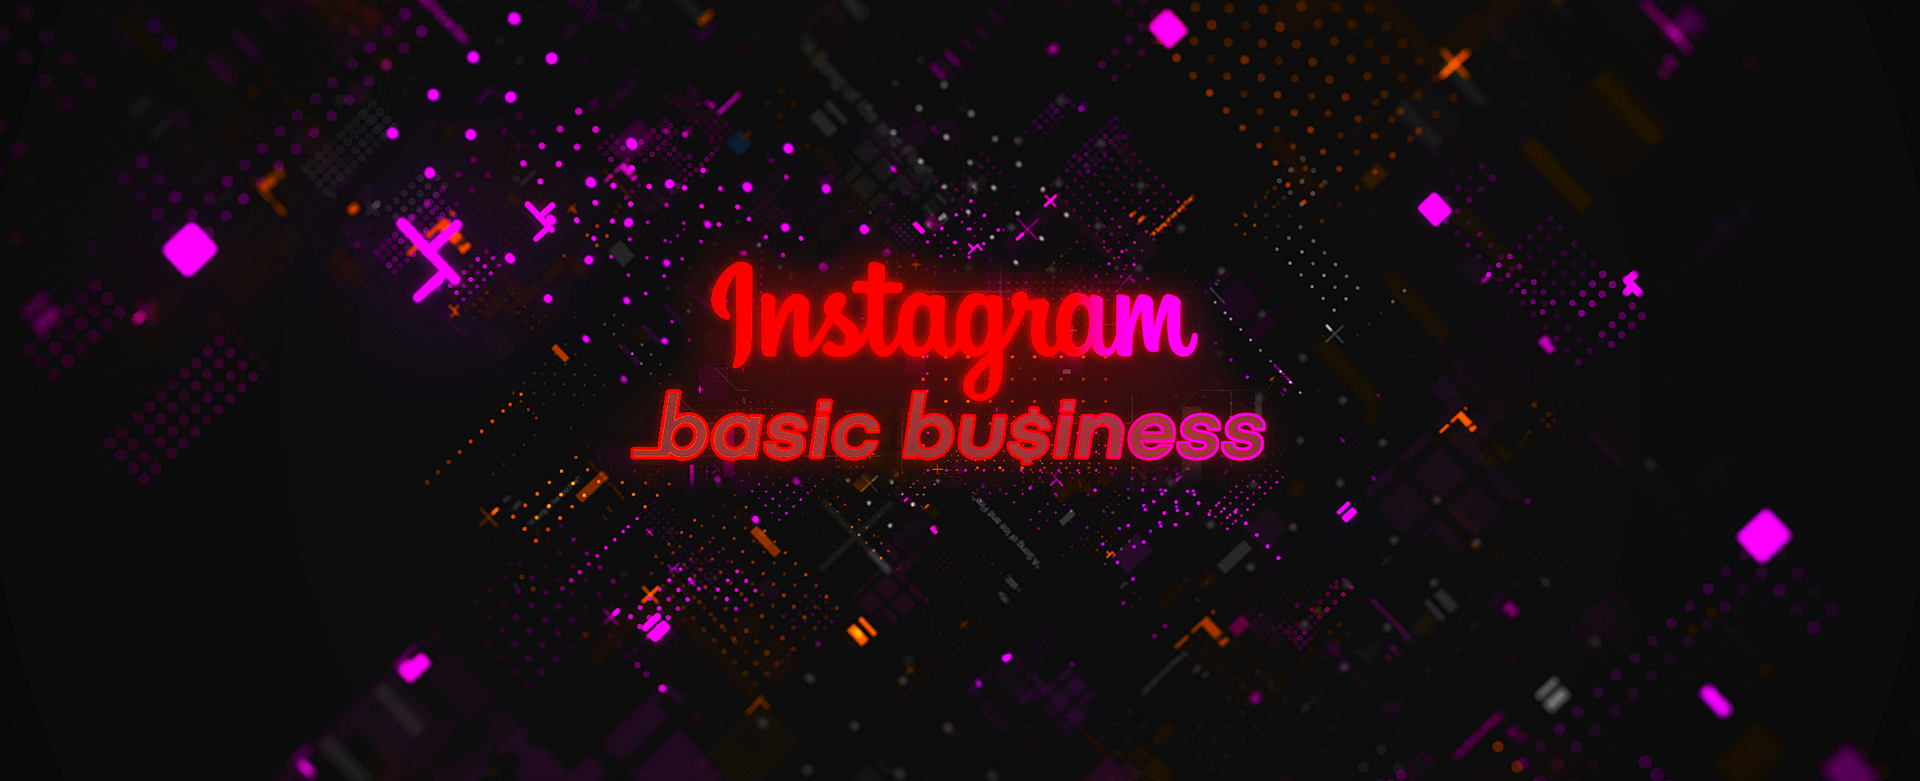 Instagram Basic Business